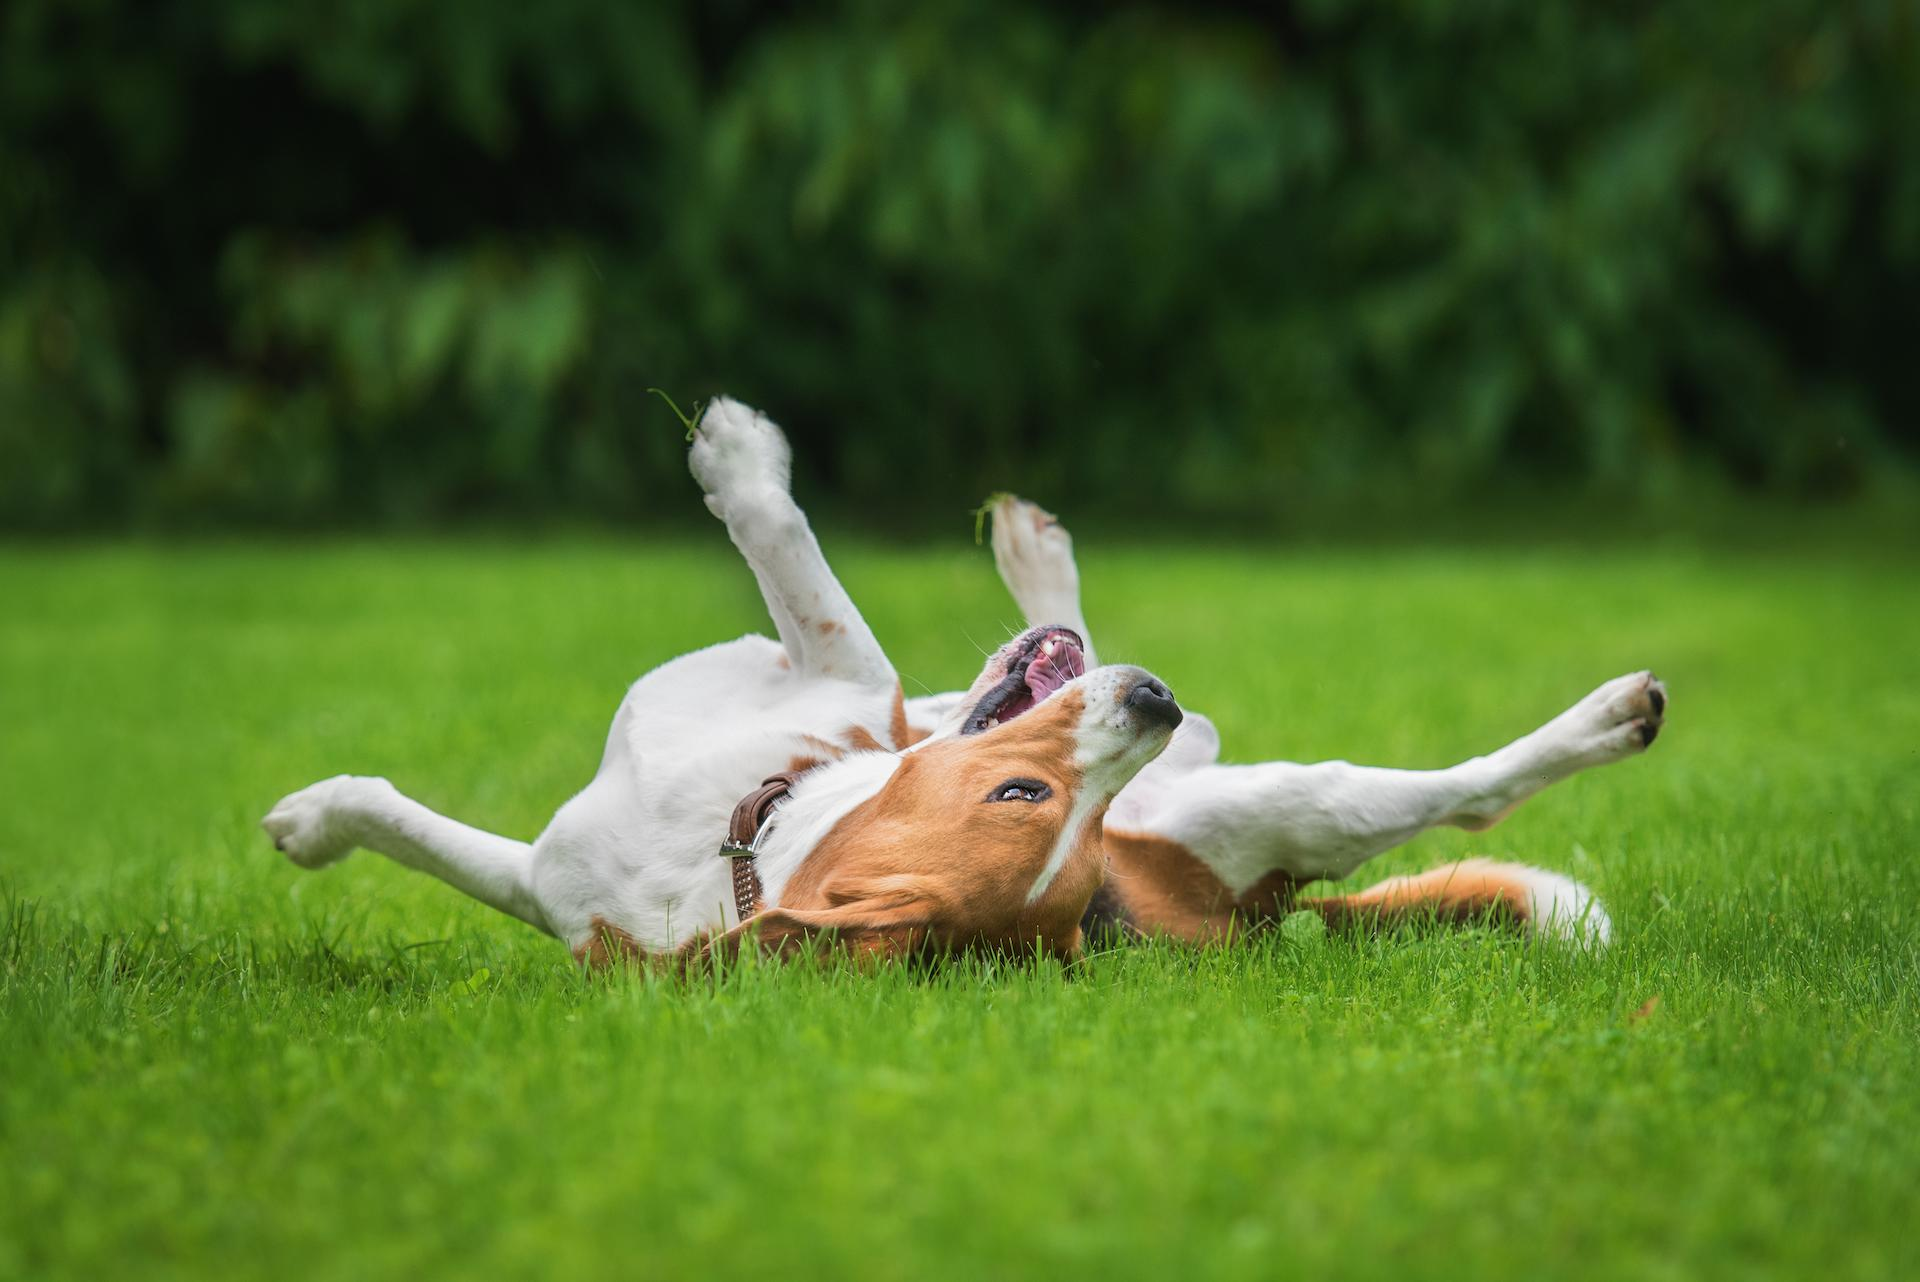 Dog hives are round, itchy welts on a dog's skin that causes the fur to stick up. Though most cases of dog hives are caused by...